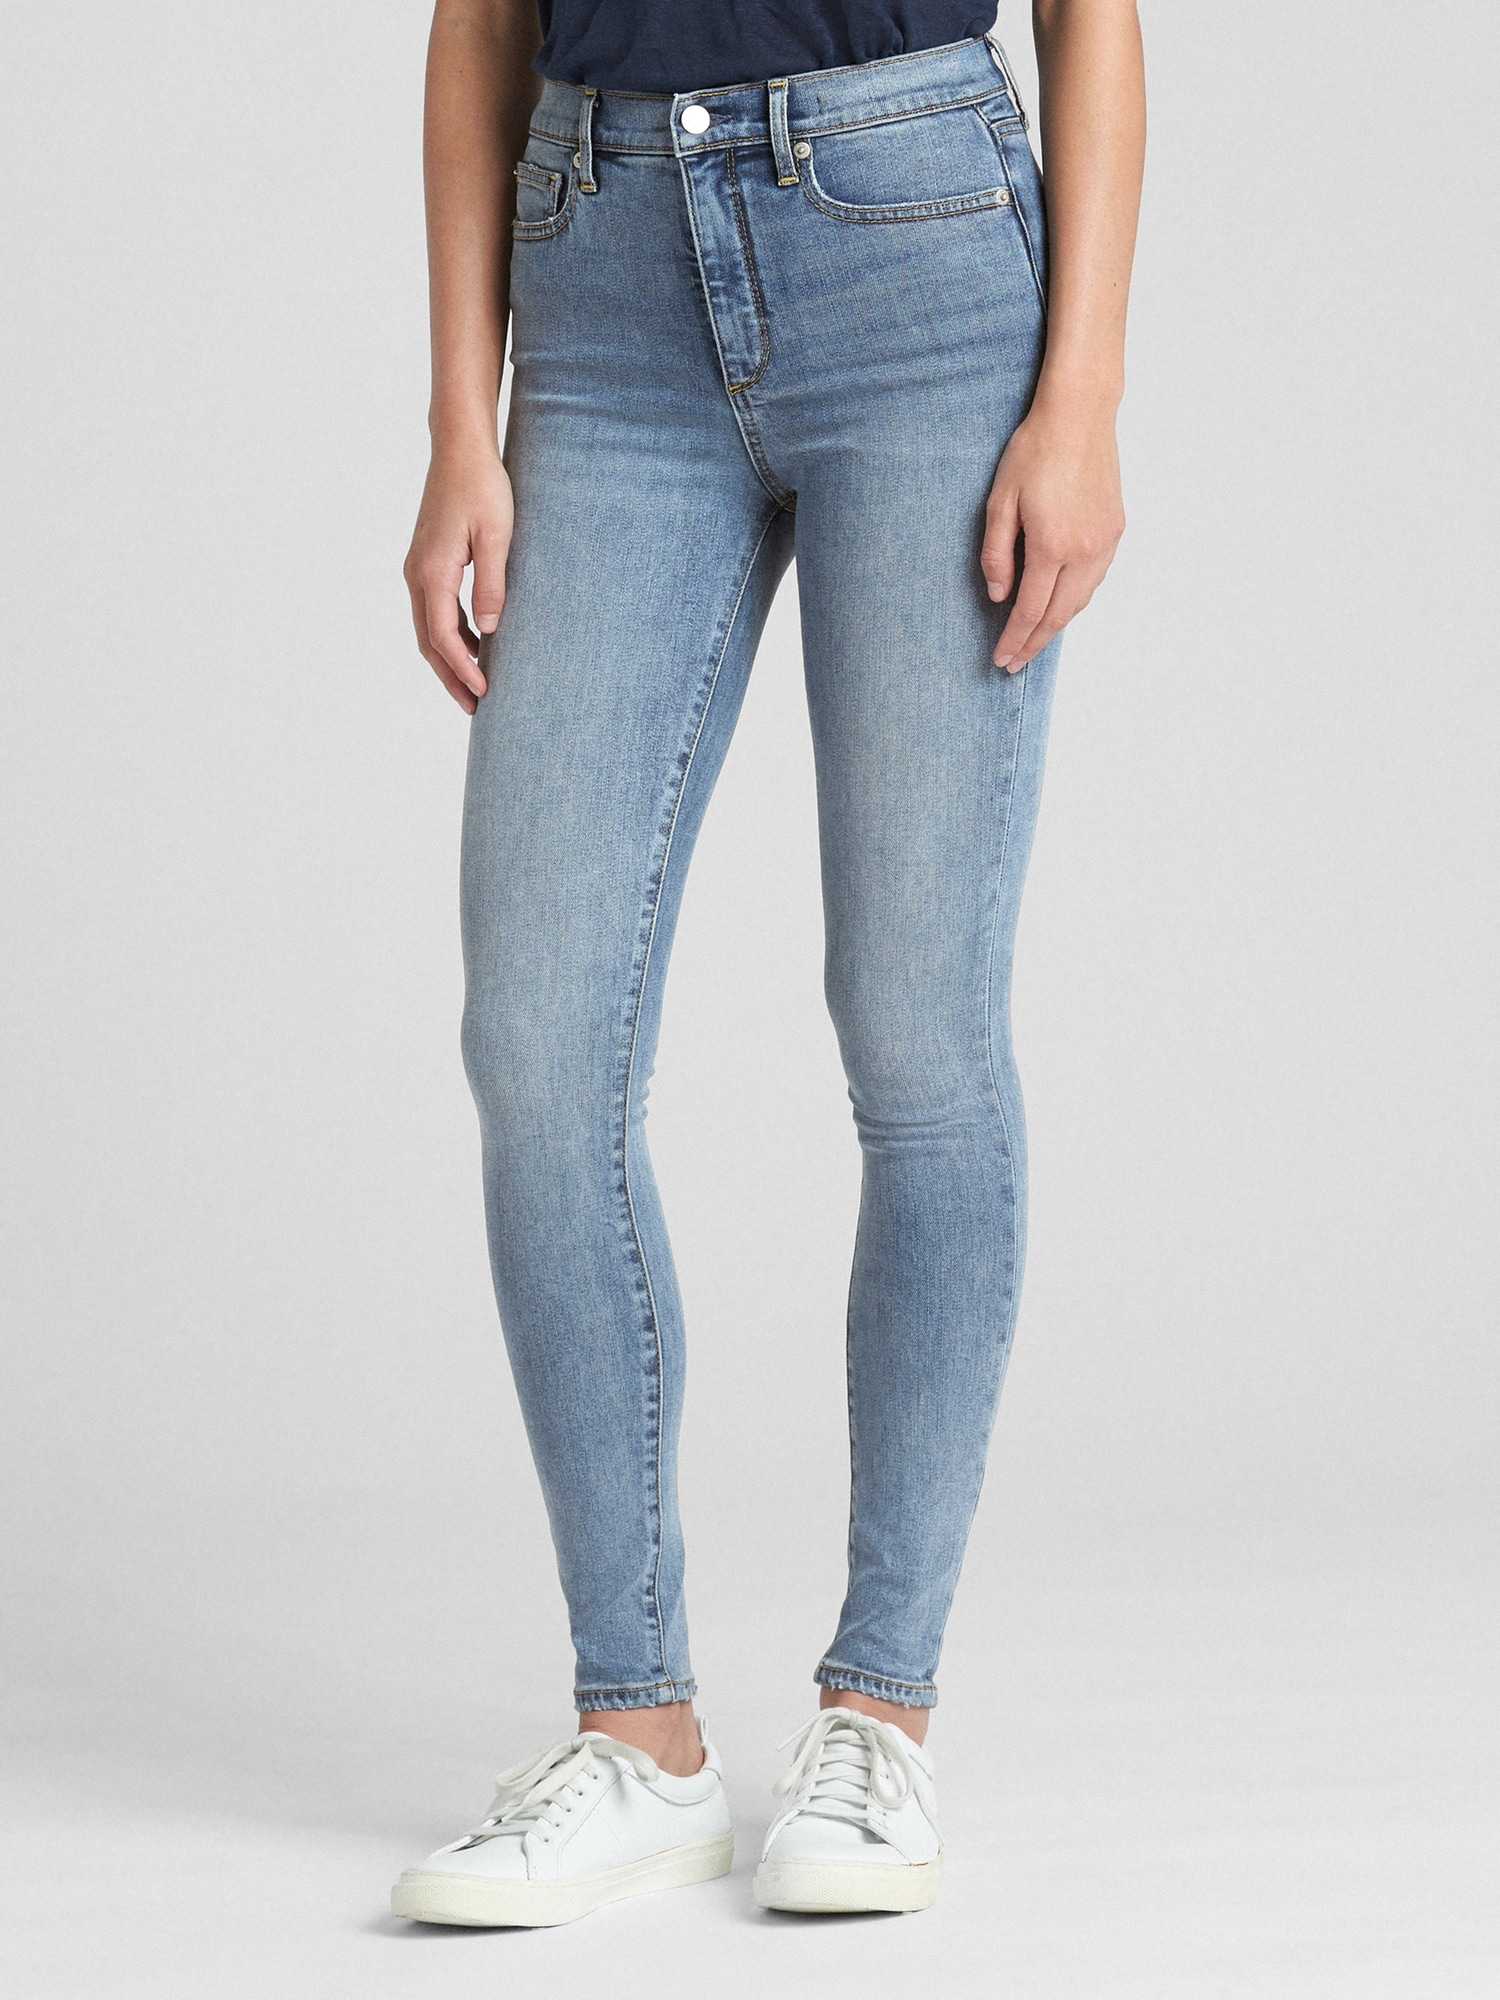 Fashion style Gap rise high skinny jeans for lady